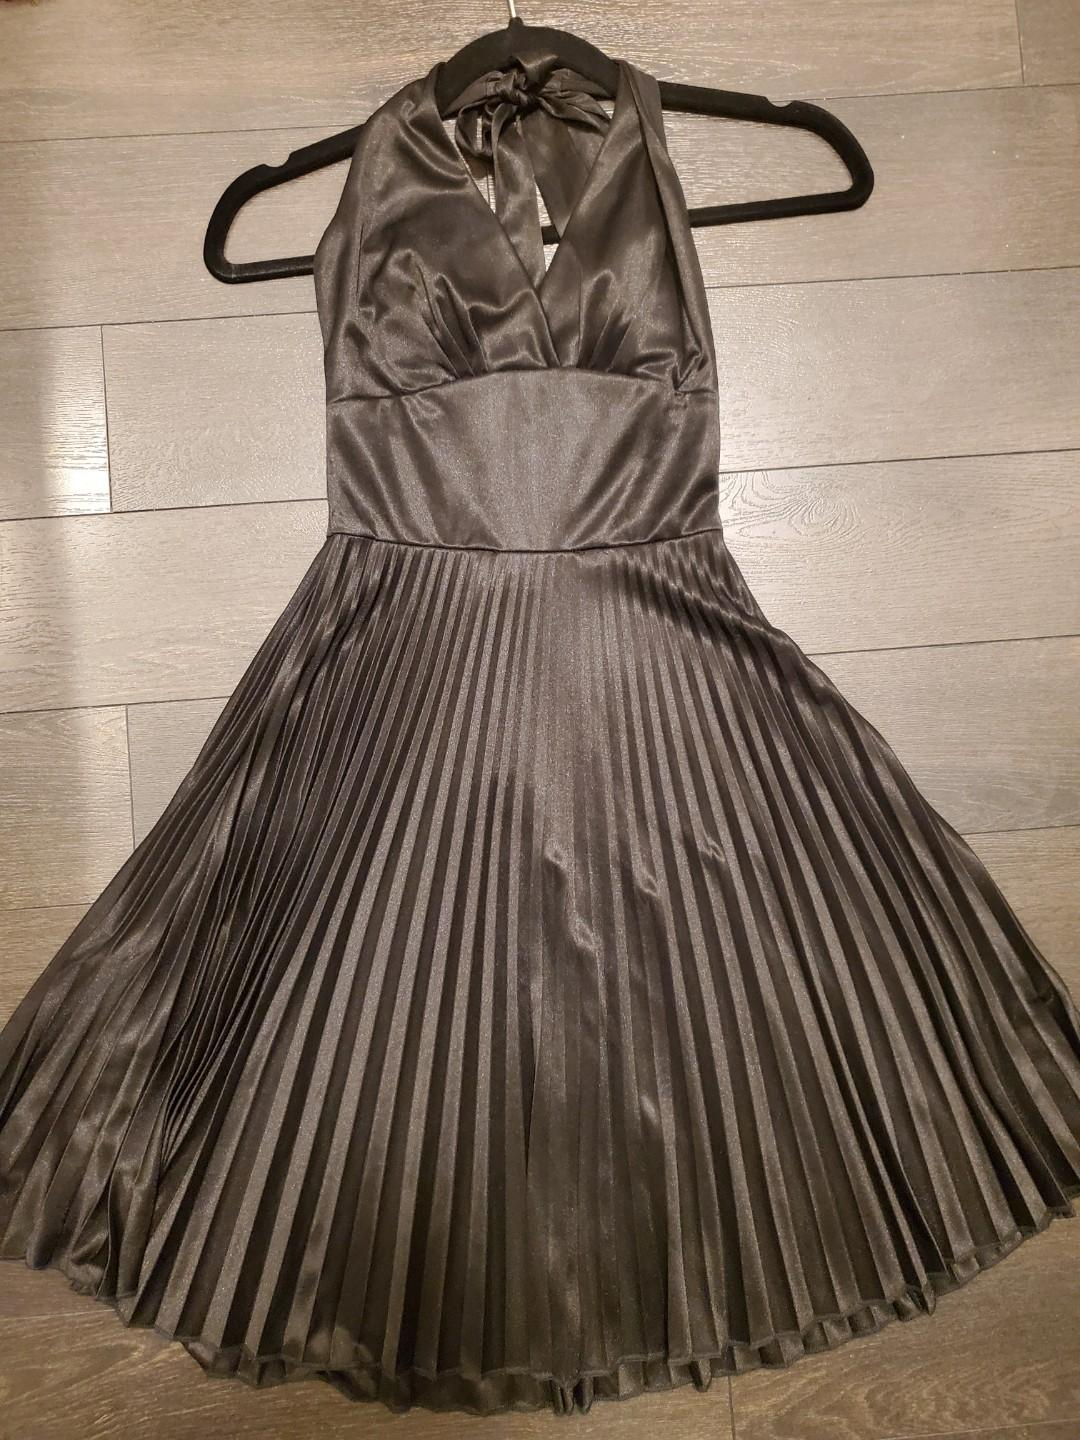 Le Chateau Satin Halter Dress - Size XXS (Fits like XS)